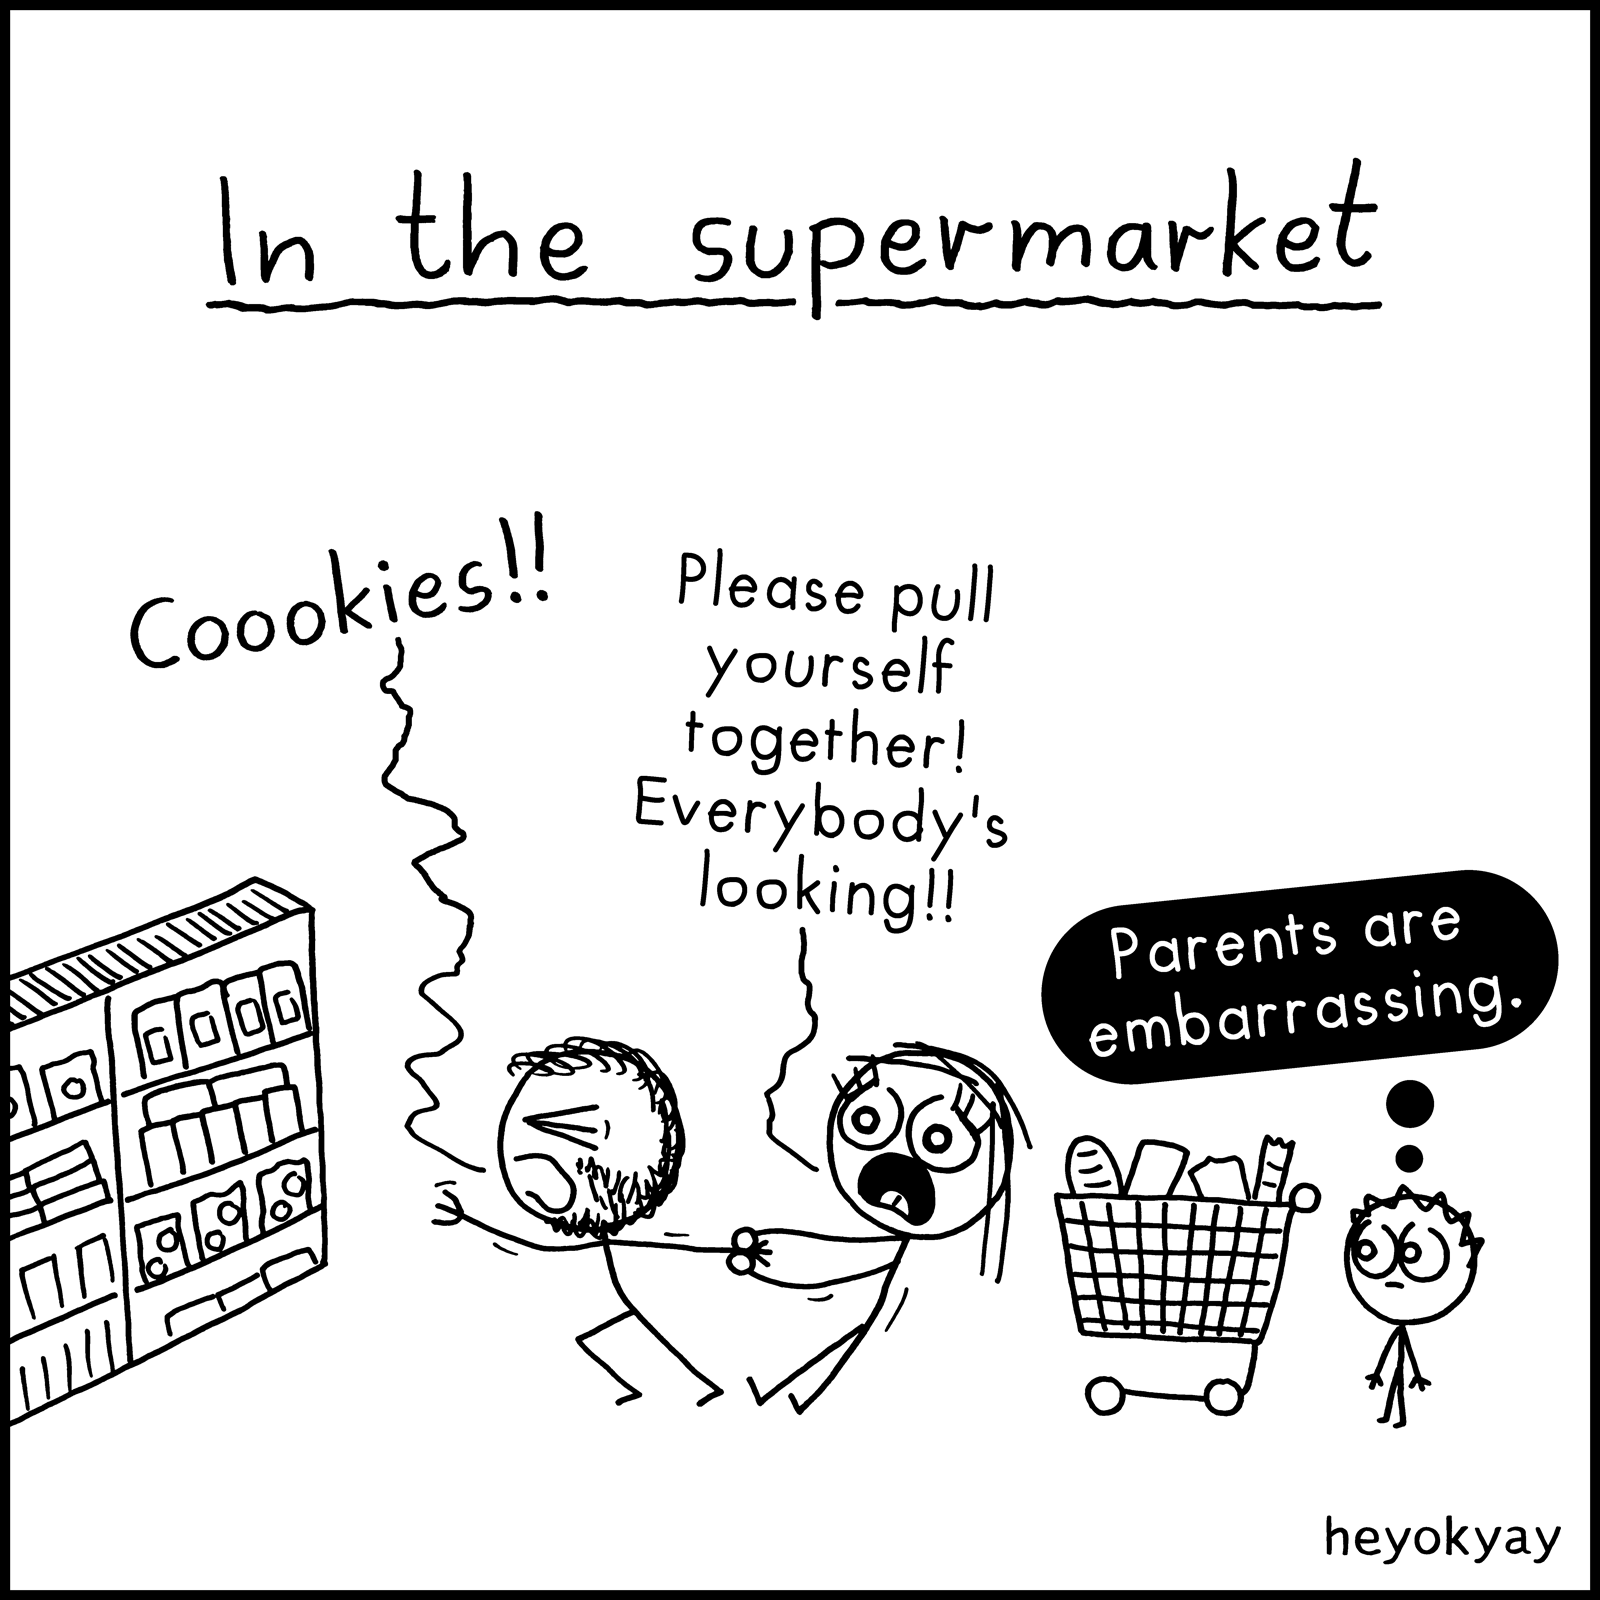 Supermarket heyokyay comic